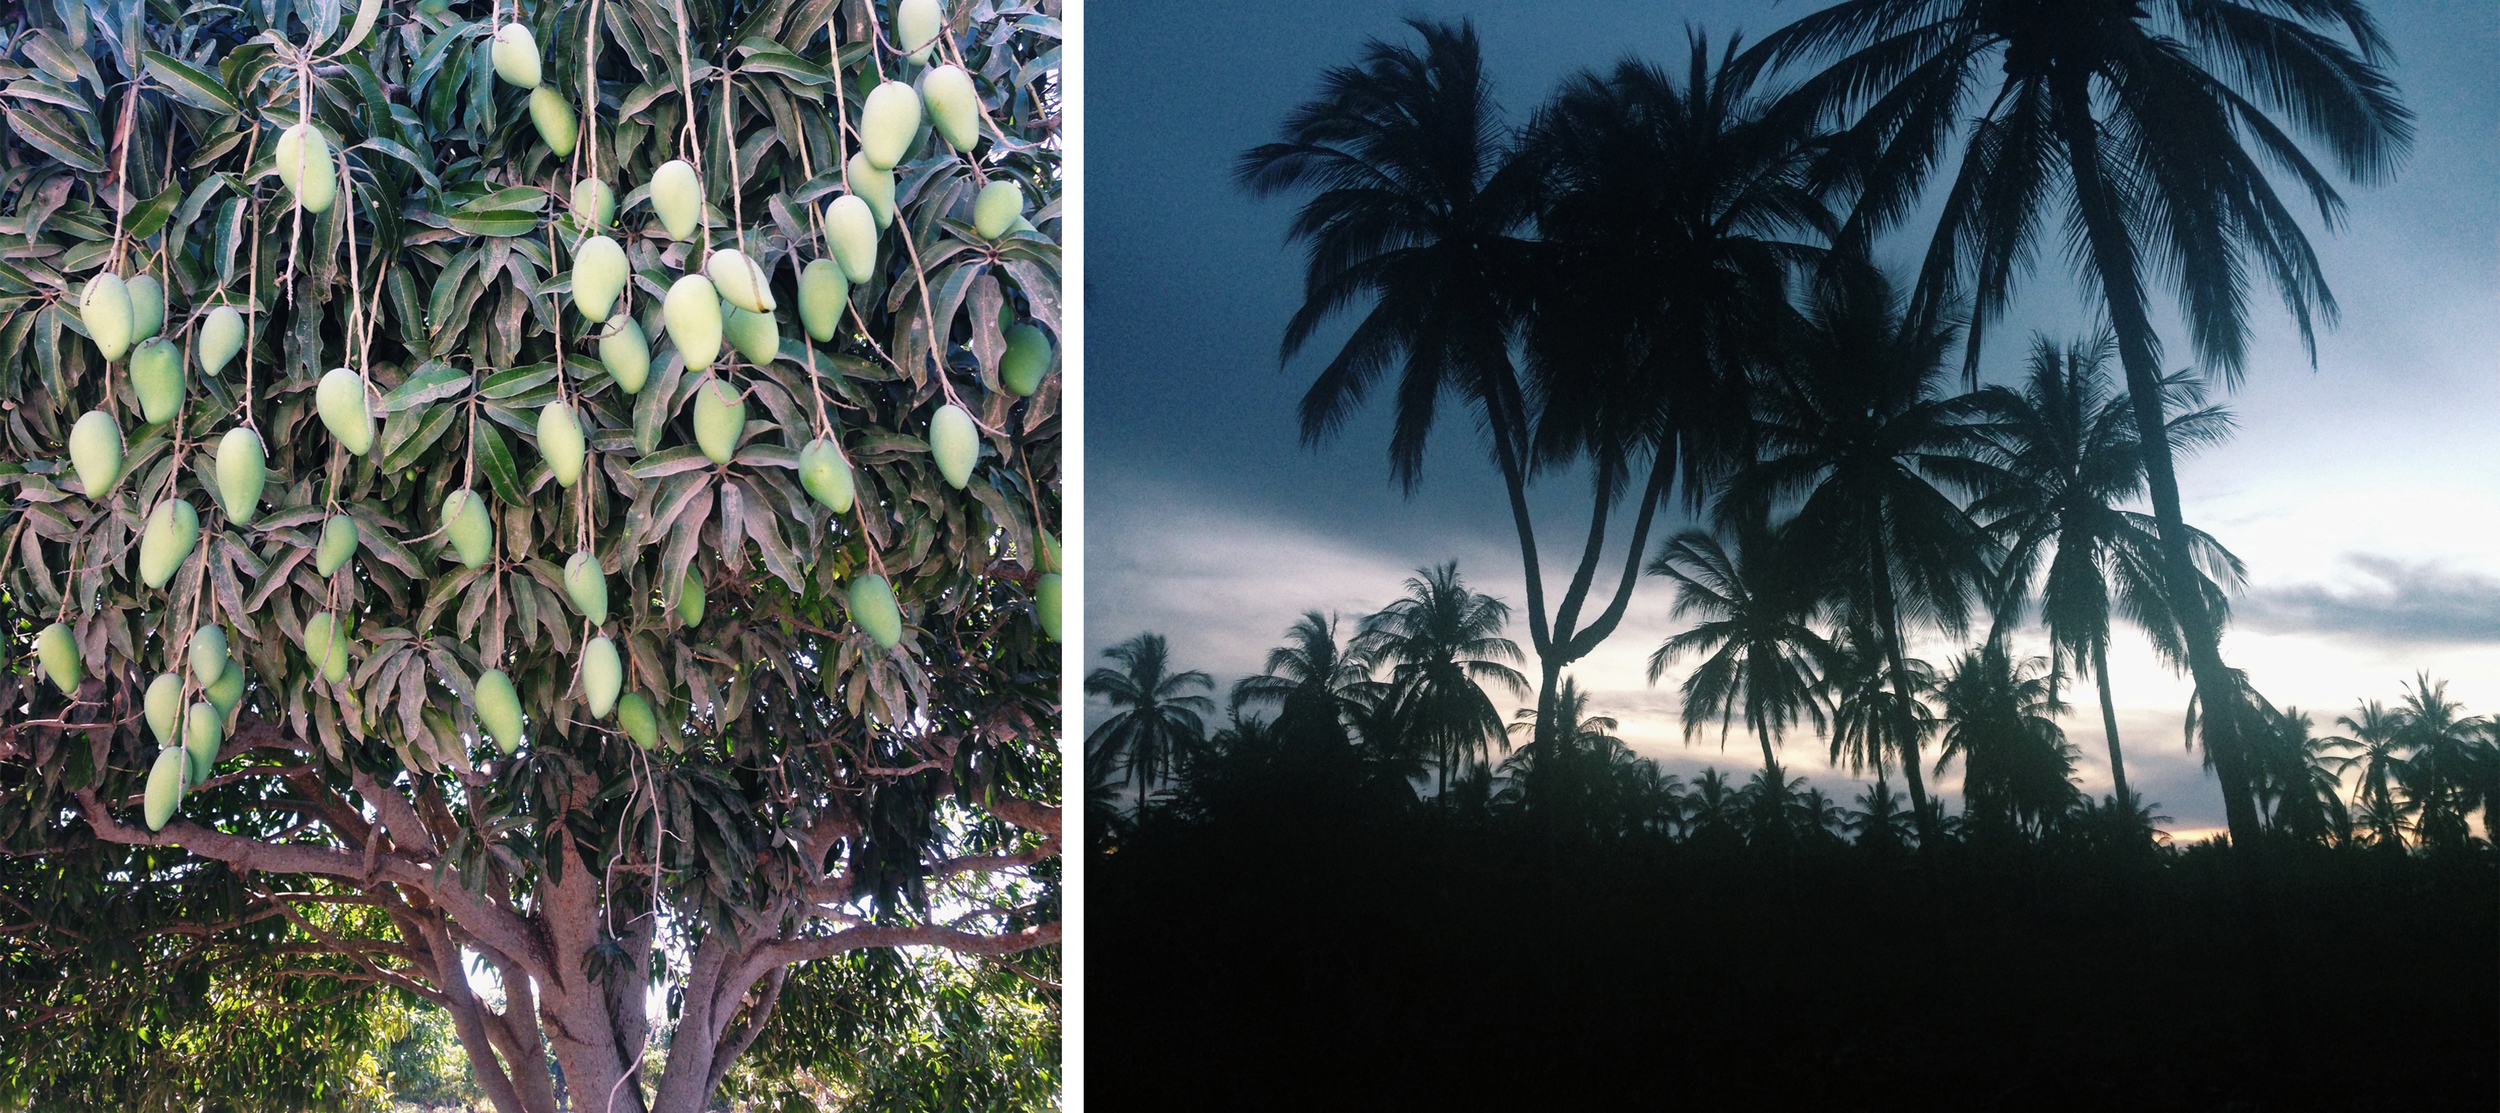 On the left a mango tree. On the right the only three headed palm tree in the world. Stone Island really is a special place.